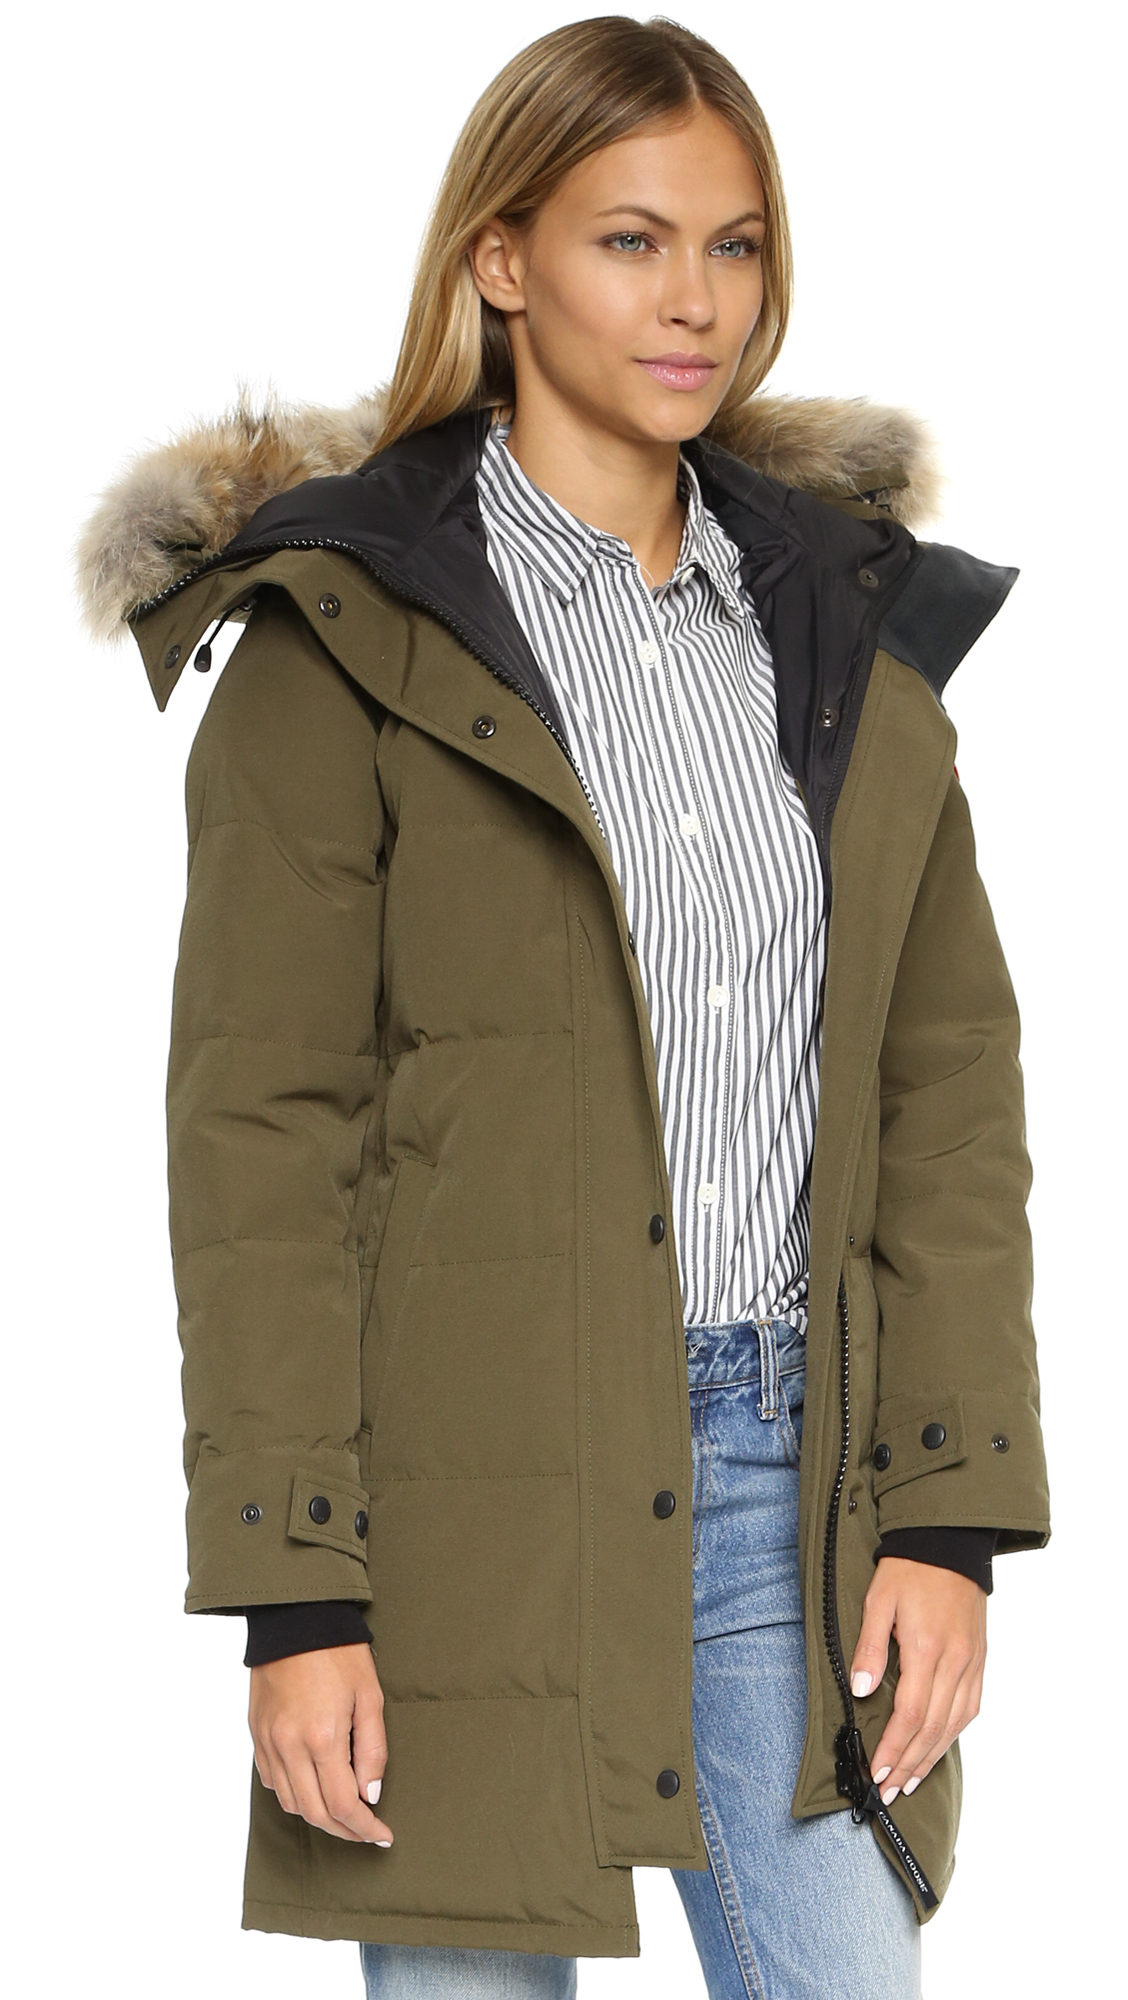 Canada Goose' Women's Shelburne Parka - Military Green